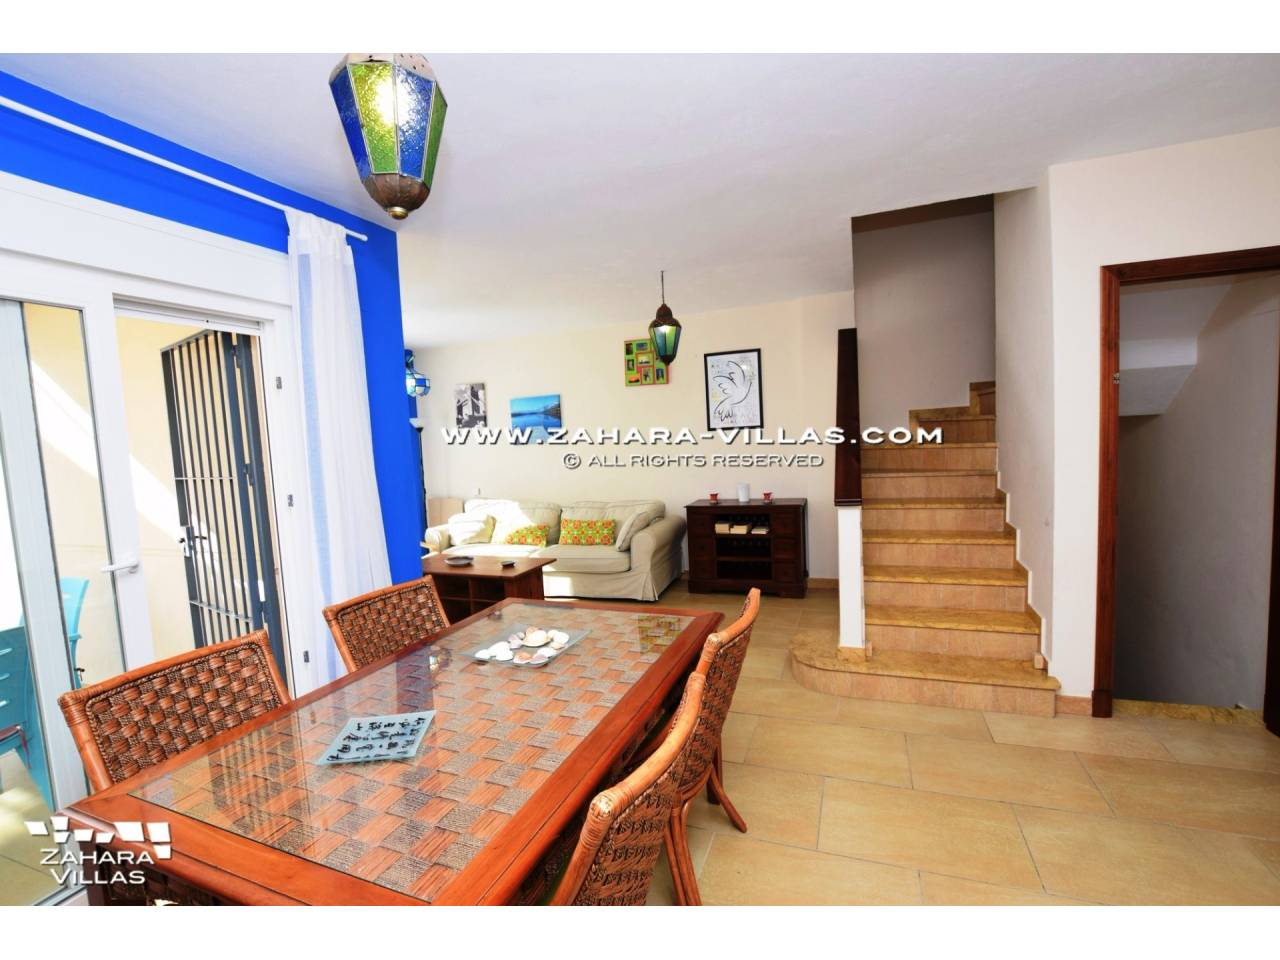 Imagen 7 de Semi-detached house for sale en Zahara de los Atunes